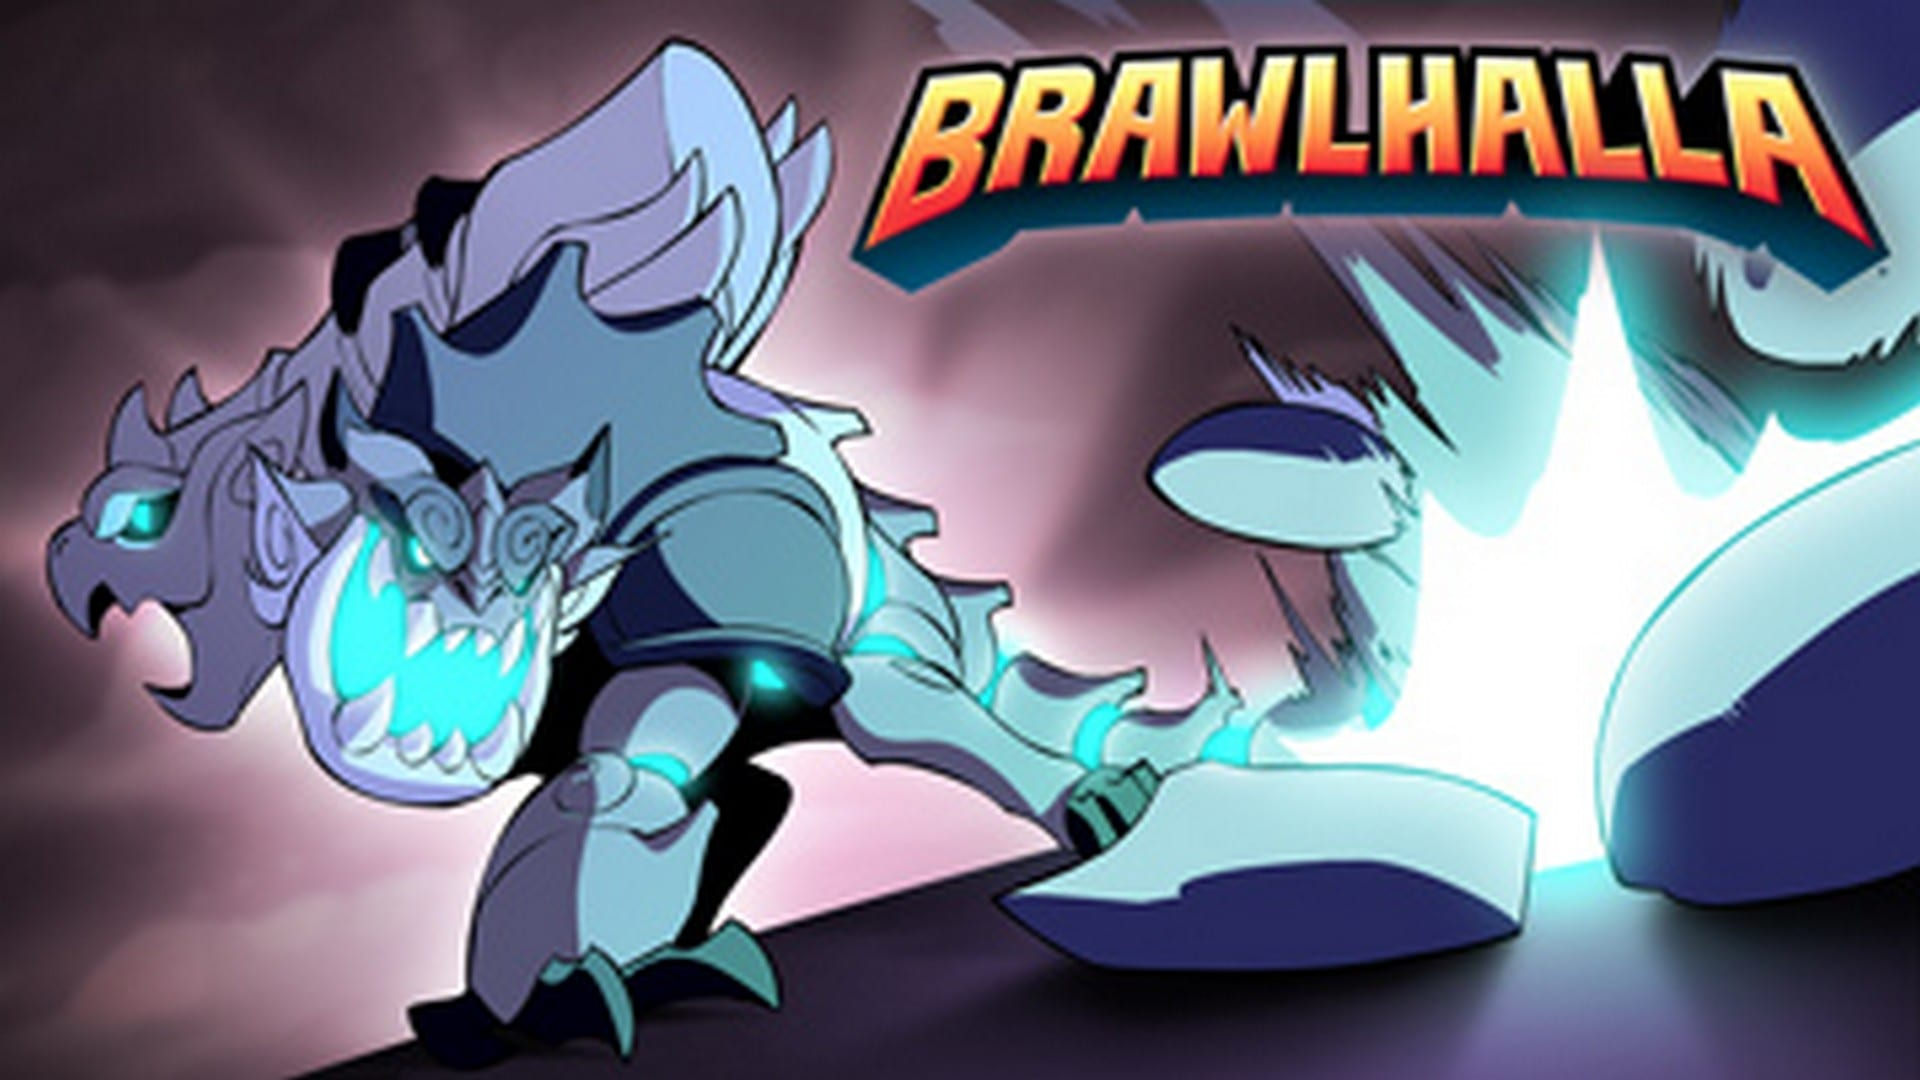 Onyx, The Newest Legend in Brawlhalla, Available Today